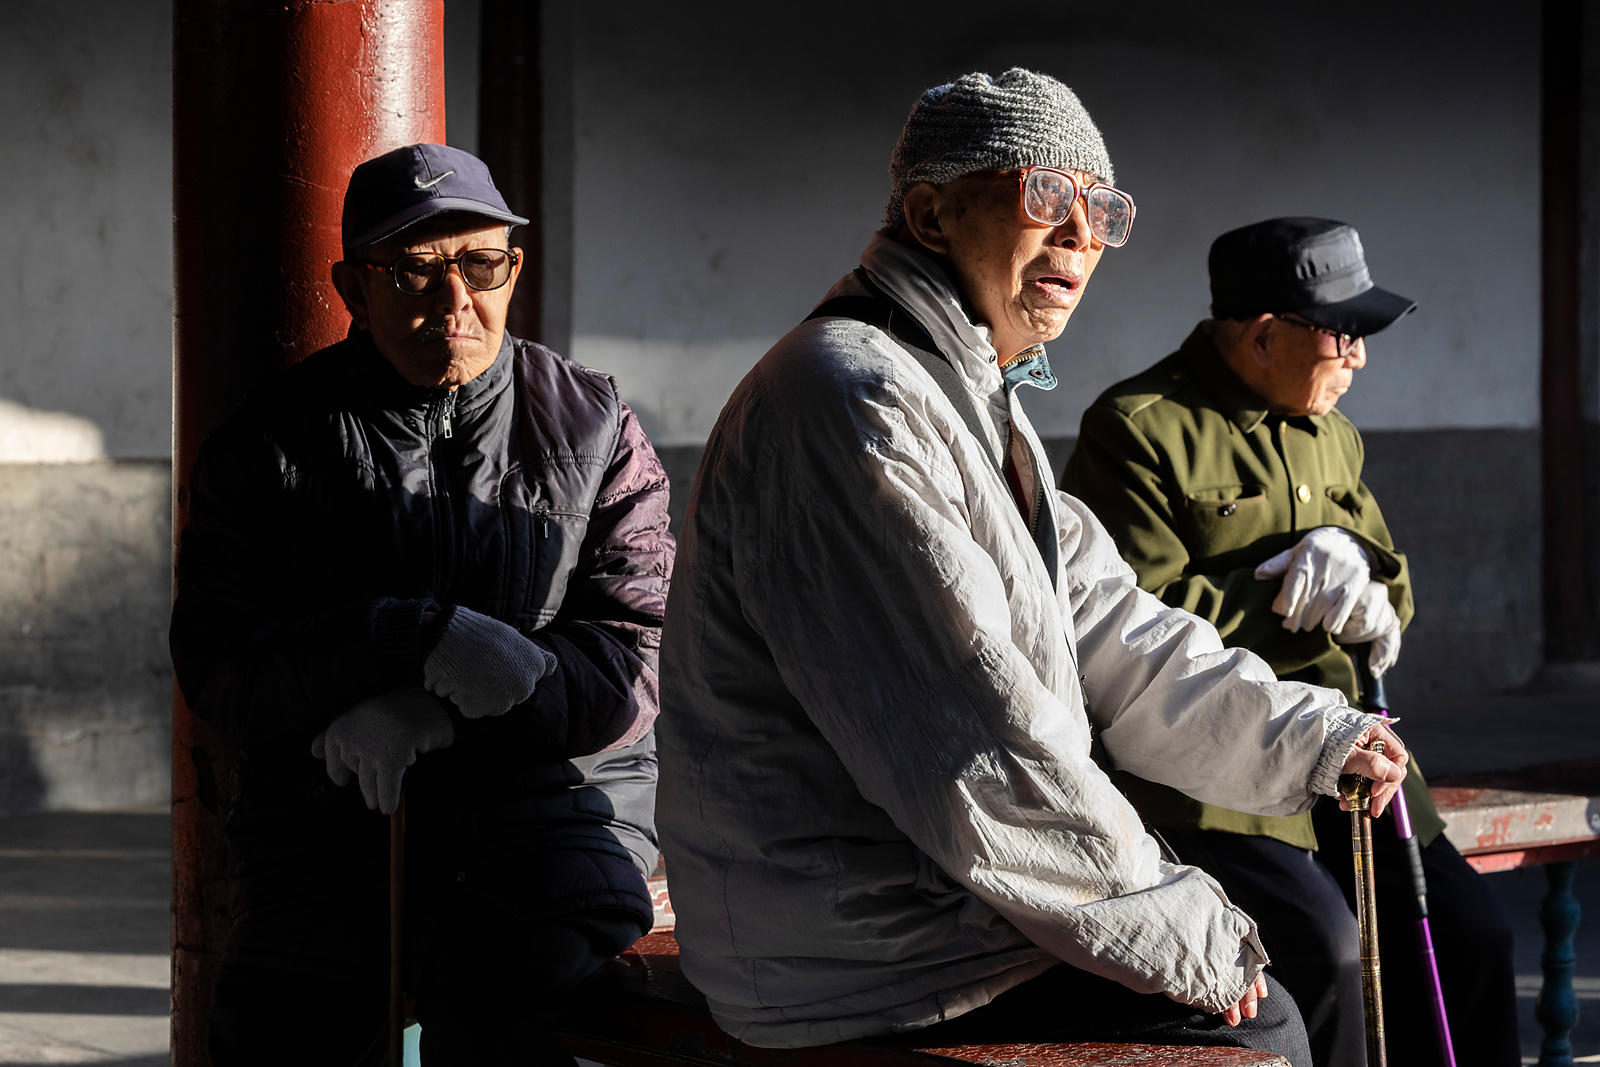 Elderly Men at the Tiantan Park in the Morning